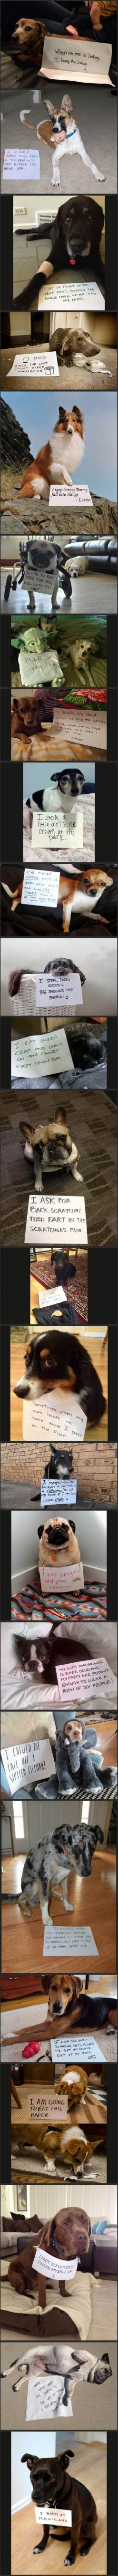 Dog shaming... Epic win...: Funny Animals, Funny Pets, Dog Shame, Dog Shaming, Animal Shame, Bad Dog, Funny Dogs Hilarious, So Funny